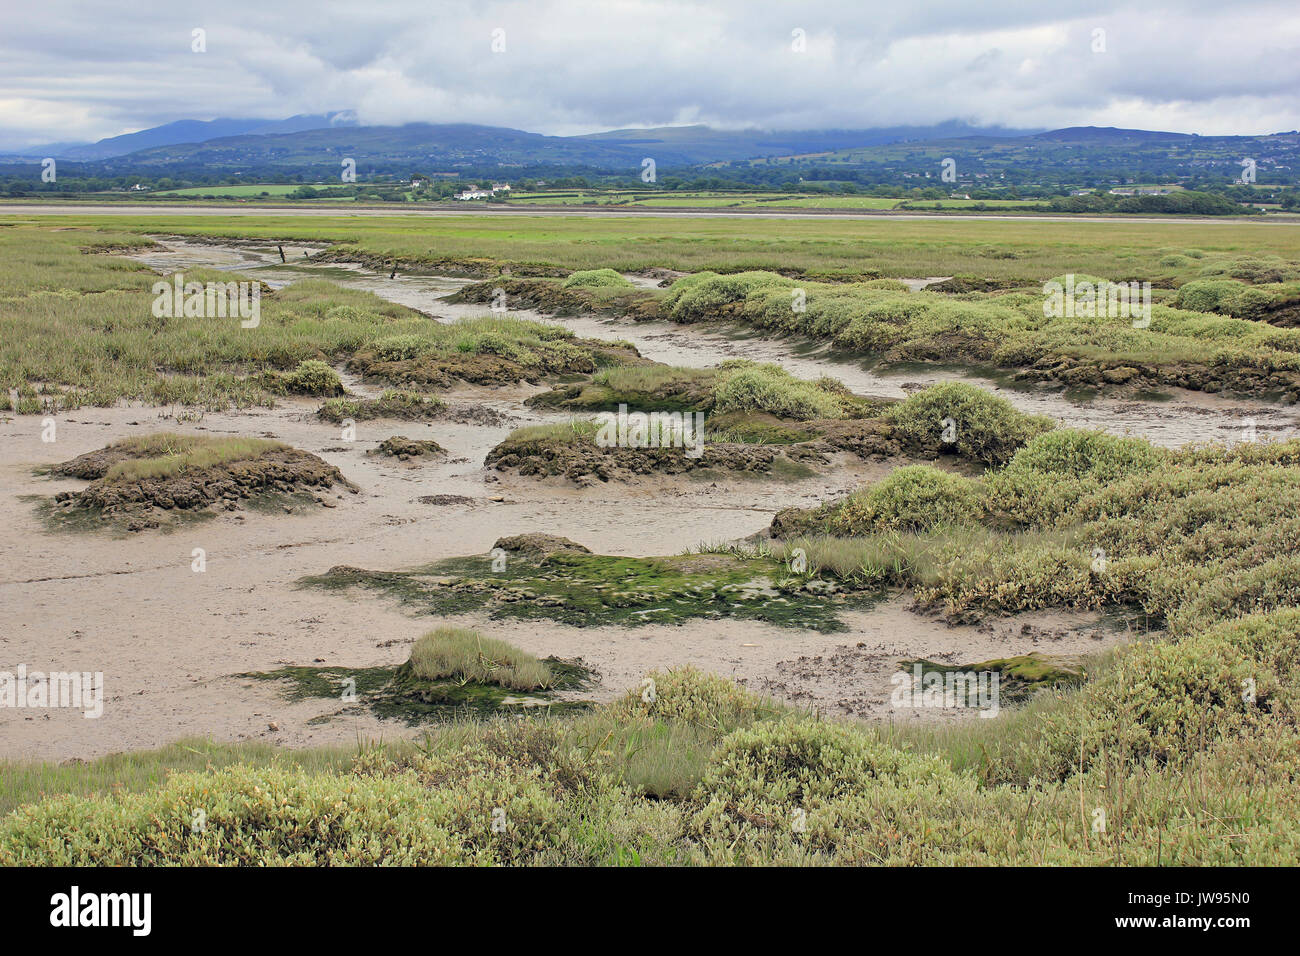 Saltmarsh with Tidal creeks at Dinas Dinlle, Caernarvon, Wales Stock Photo